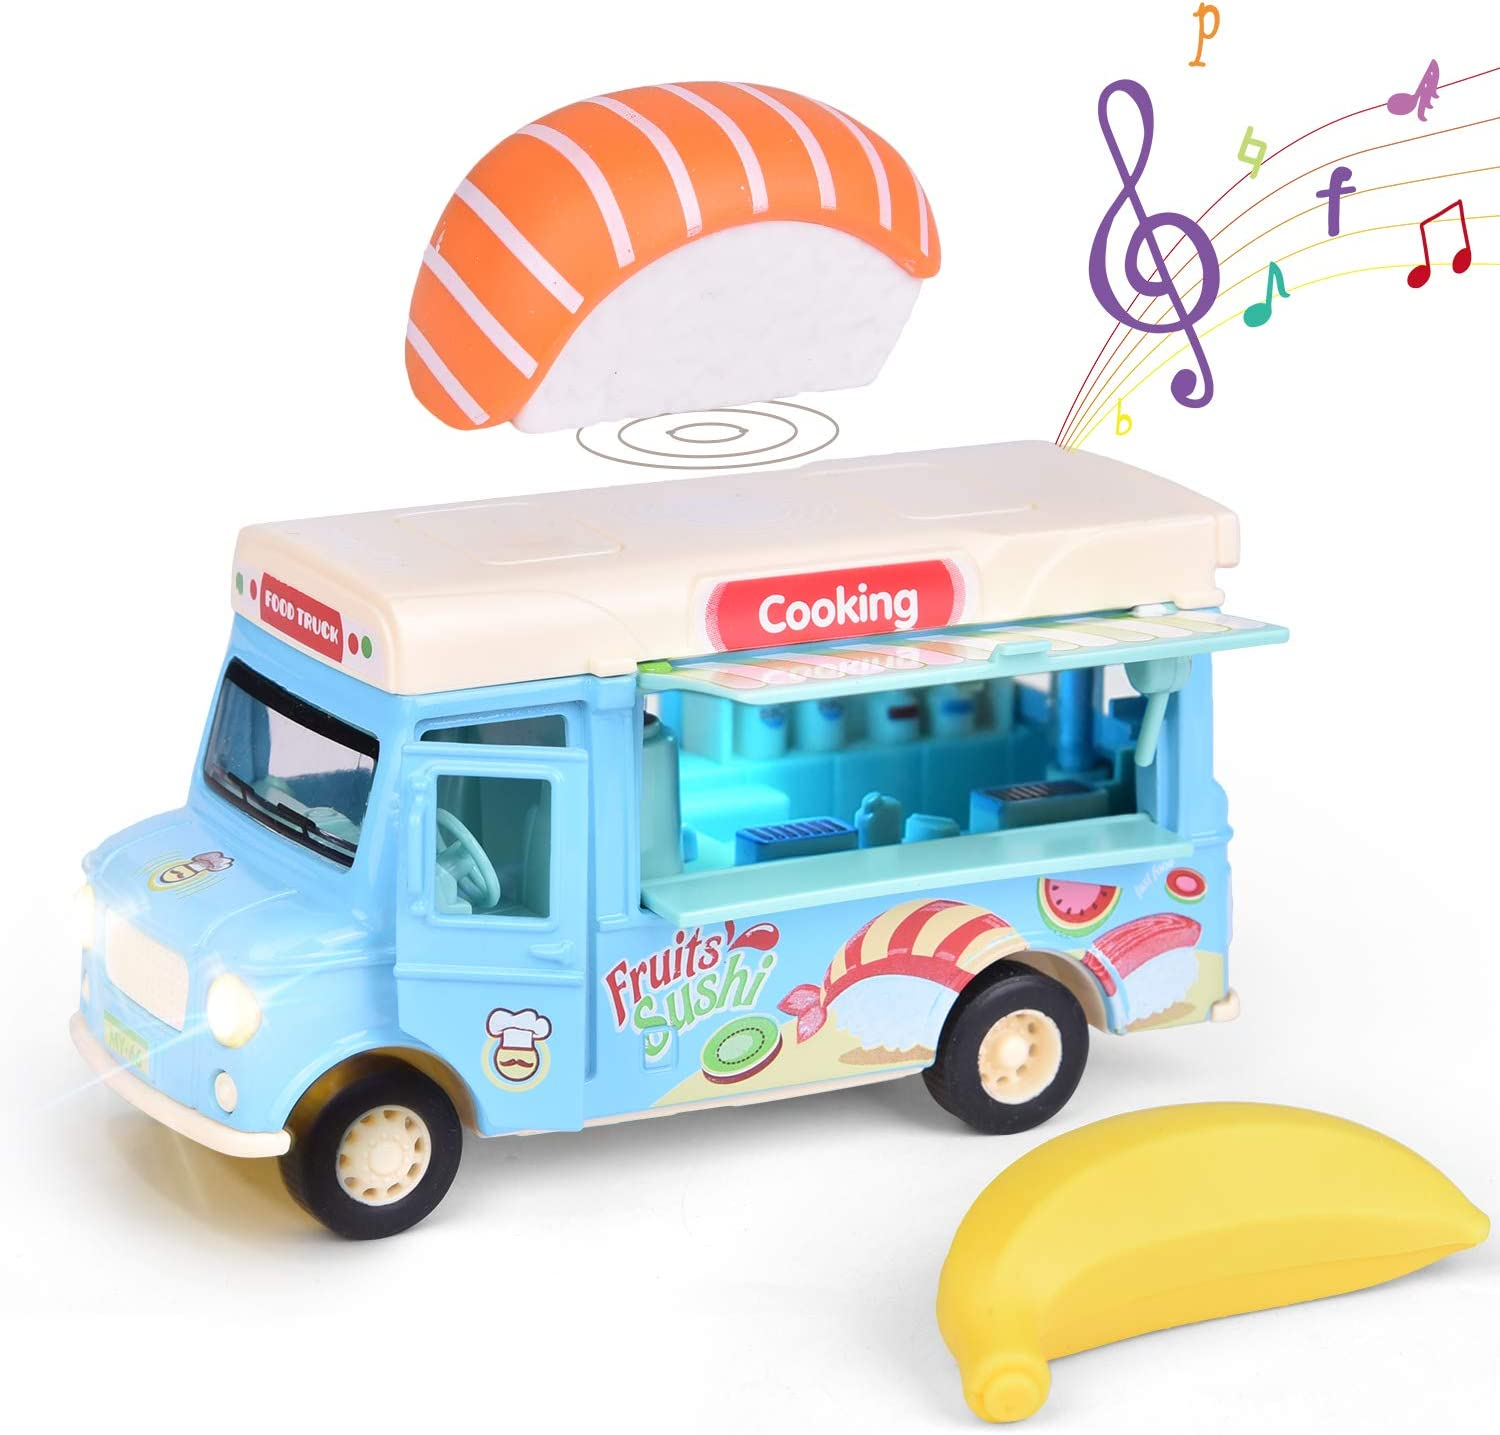 FUN LITTLE TOYS Pull Back Truck Sushi Car,Die Cast Food Truck with Sushi, Banana, Pretend Food Toys, Play Food Trucks for Kids, Blue